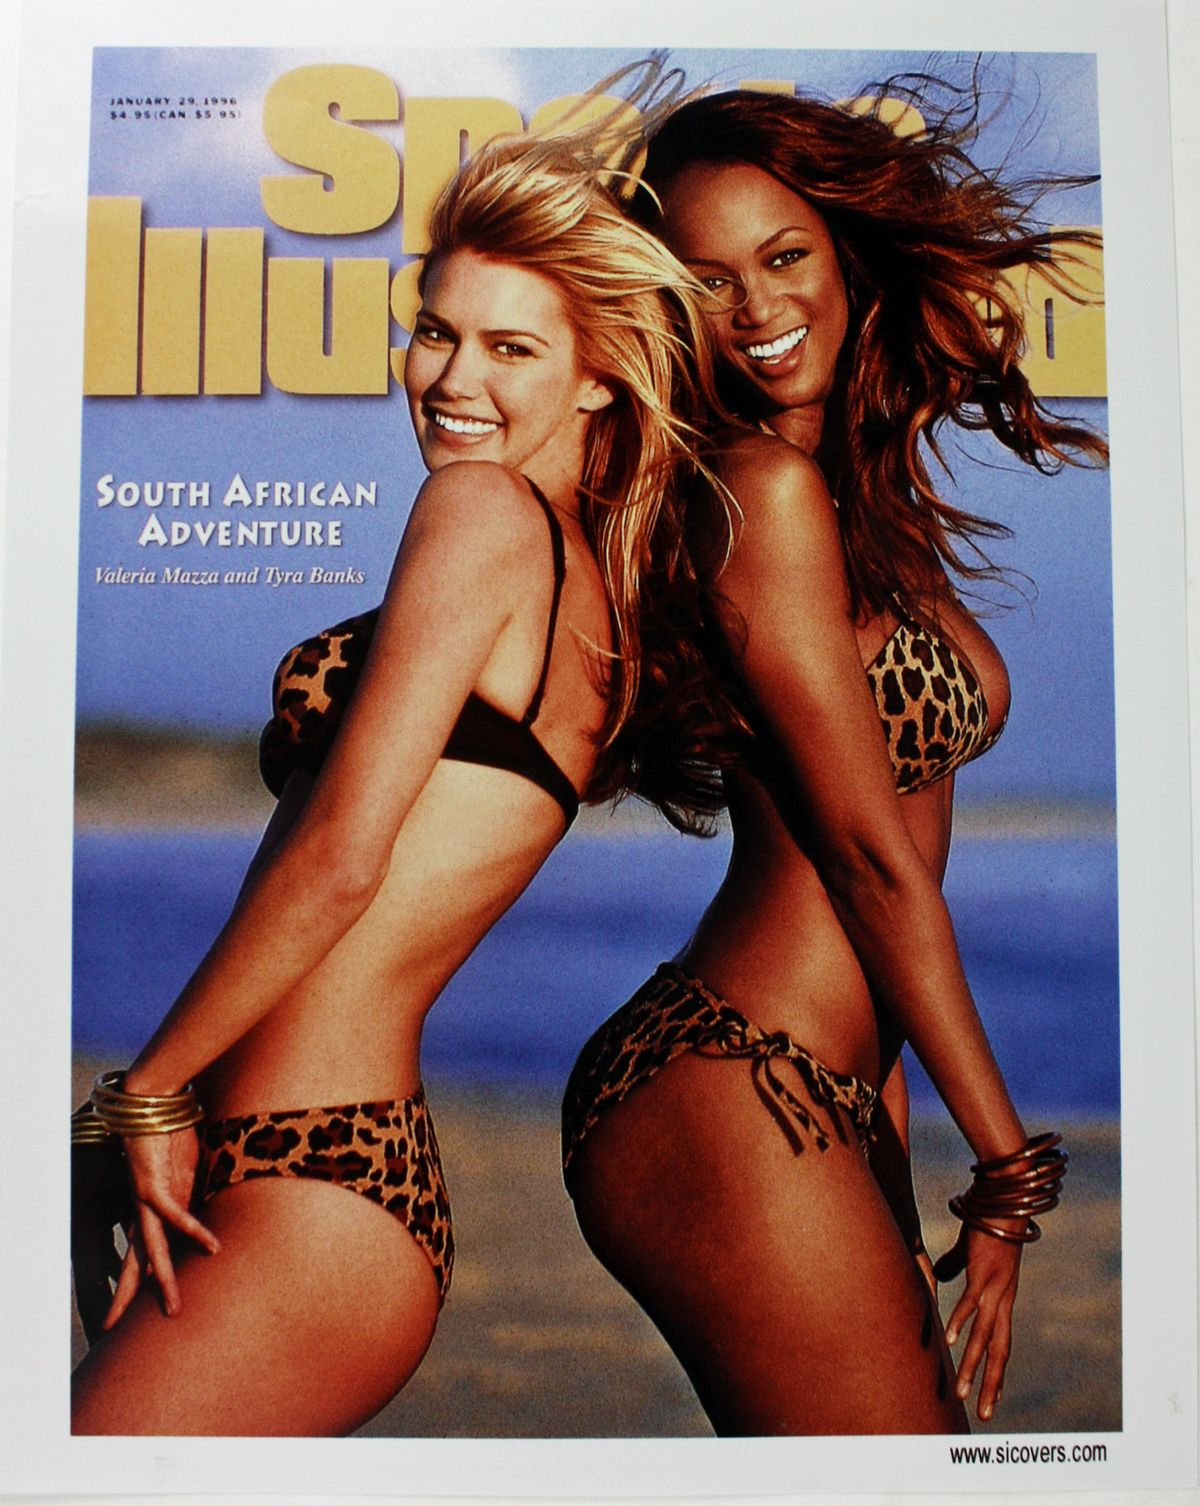 Tyra Banks winter 1997 Sports Illustrated cover  The Undefeated